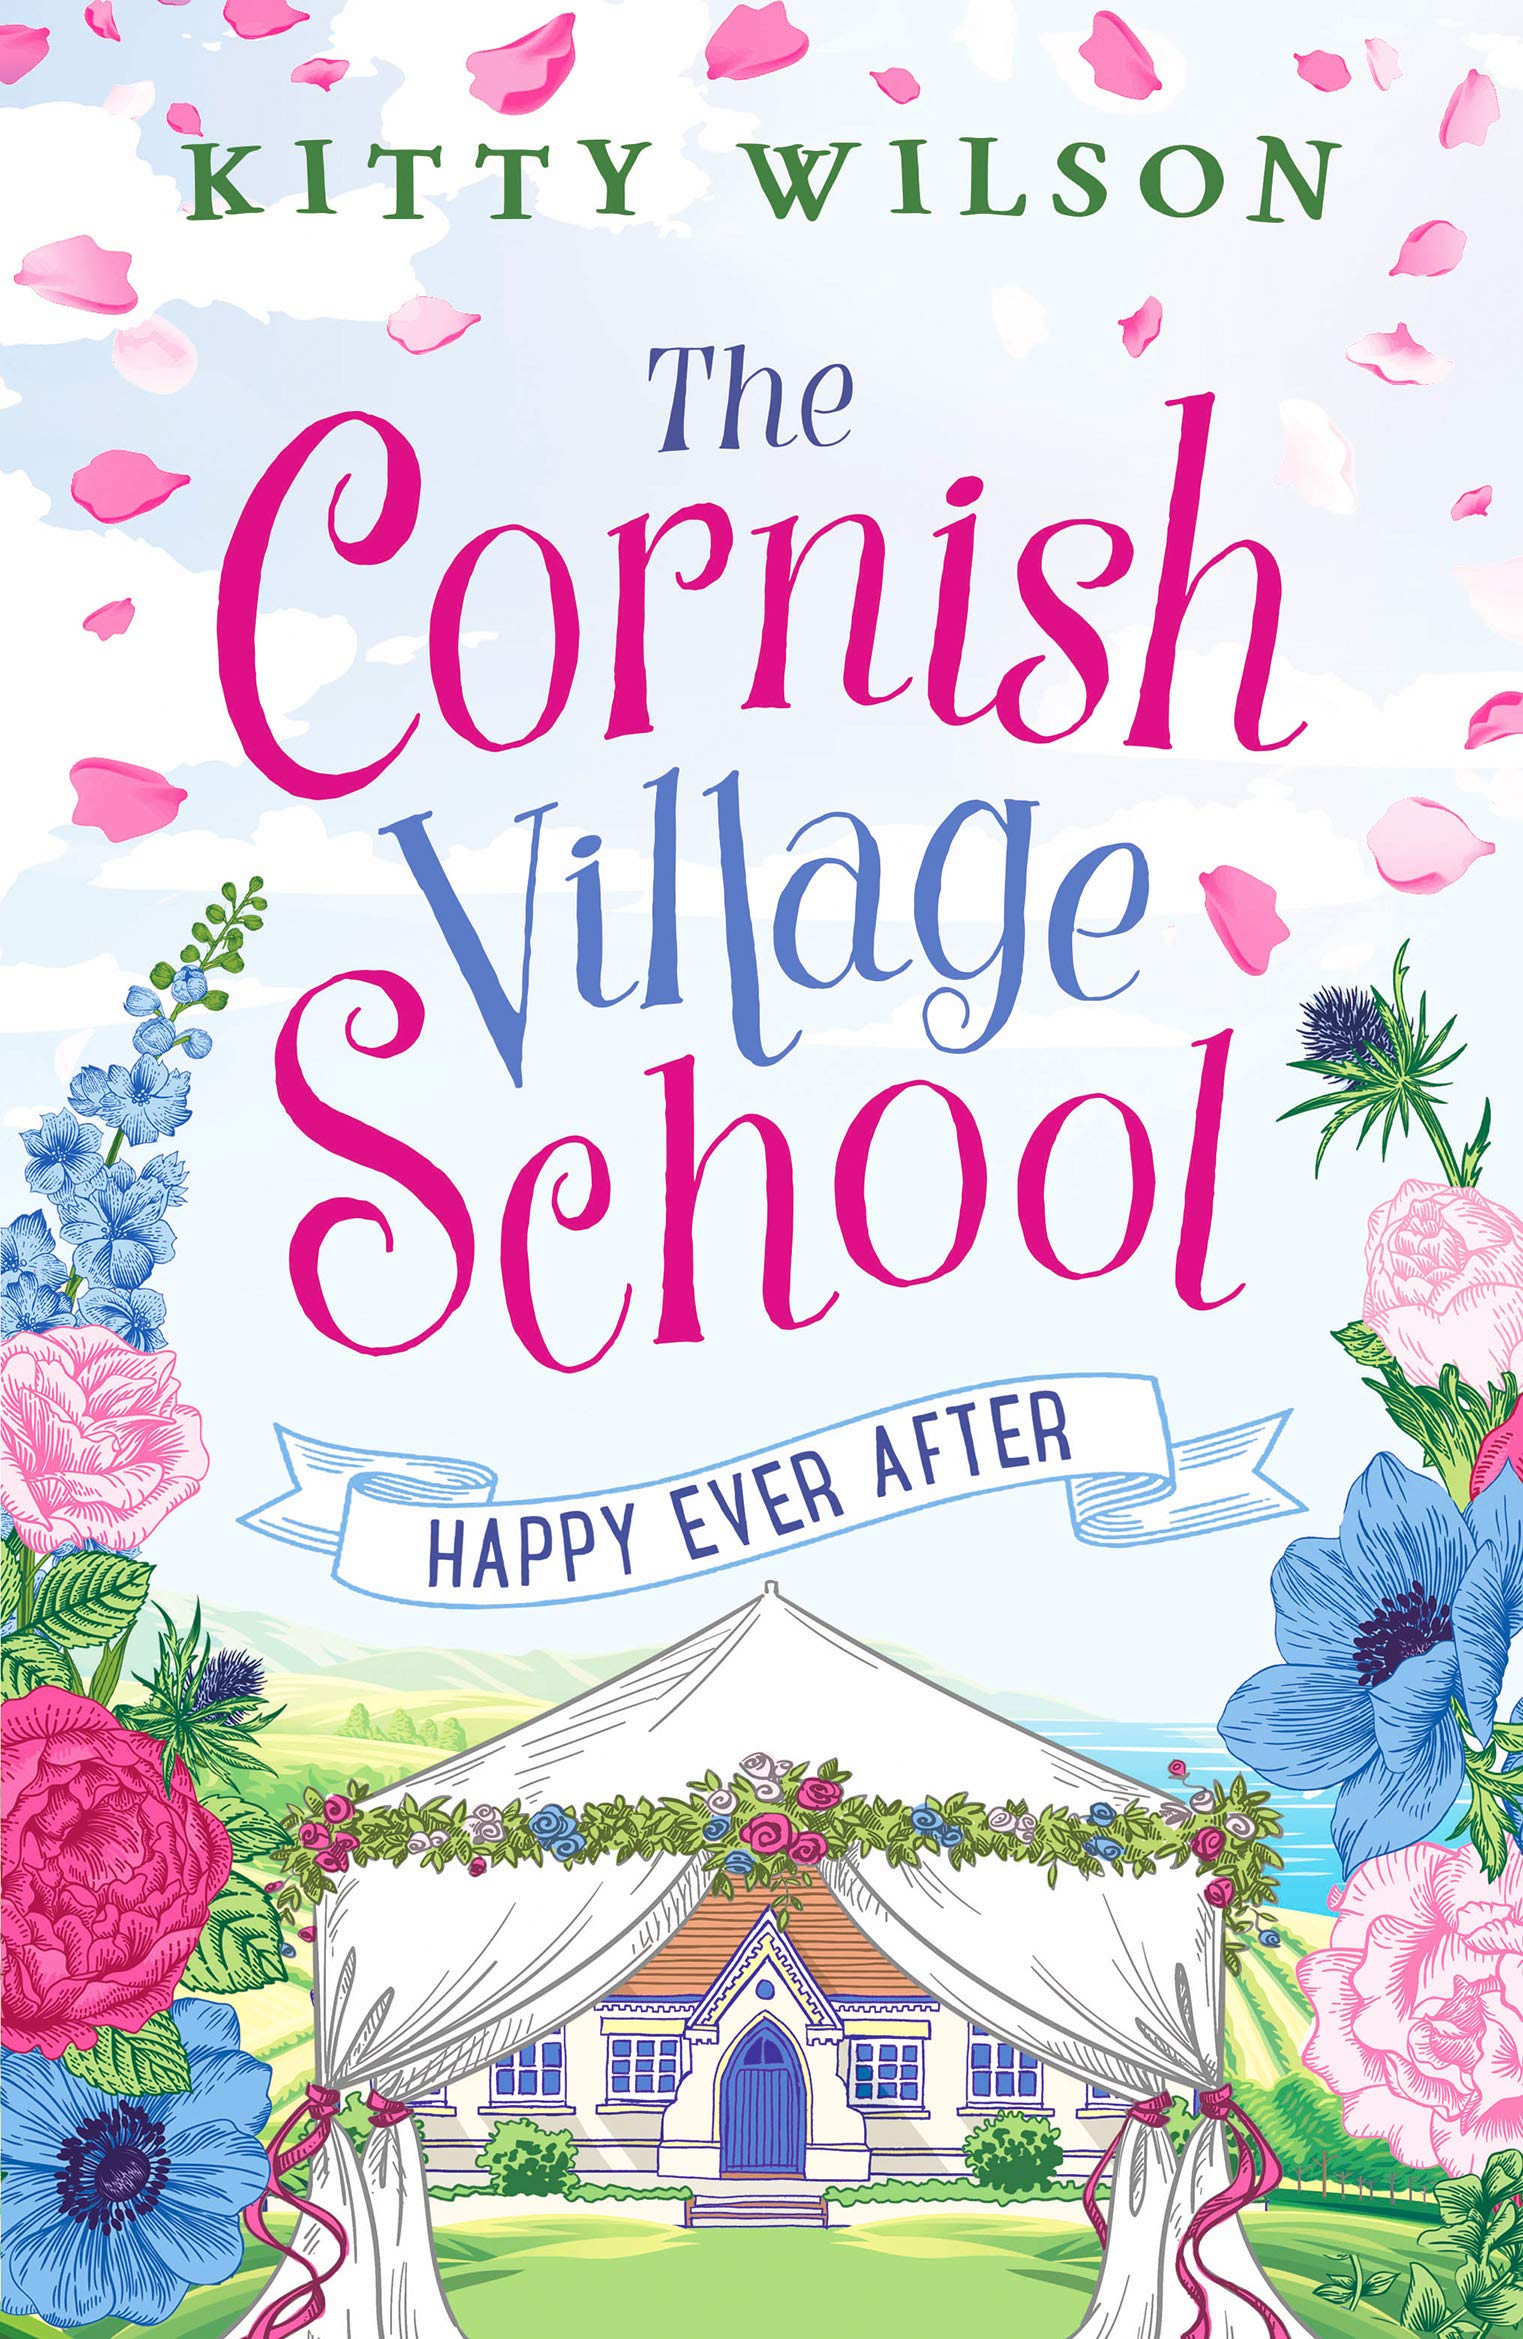 The Cornish Village School - Happy Ever After (Cornish Village School  series): 5: Amazon.co.uk: Kitty Wilson: 9781800322684: Books